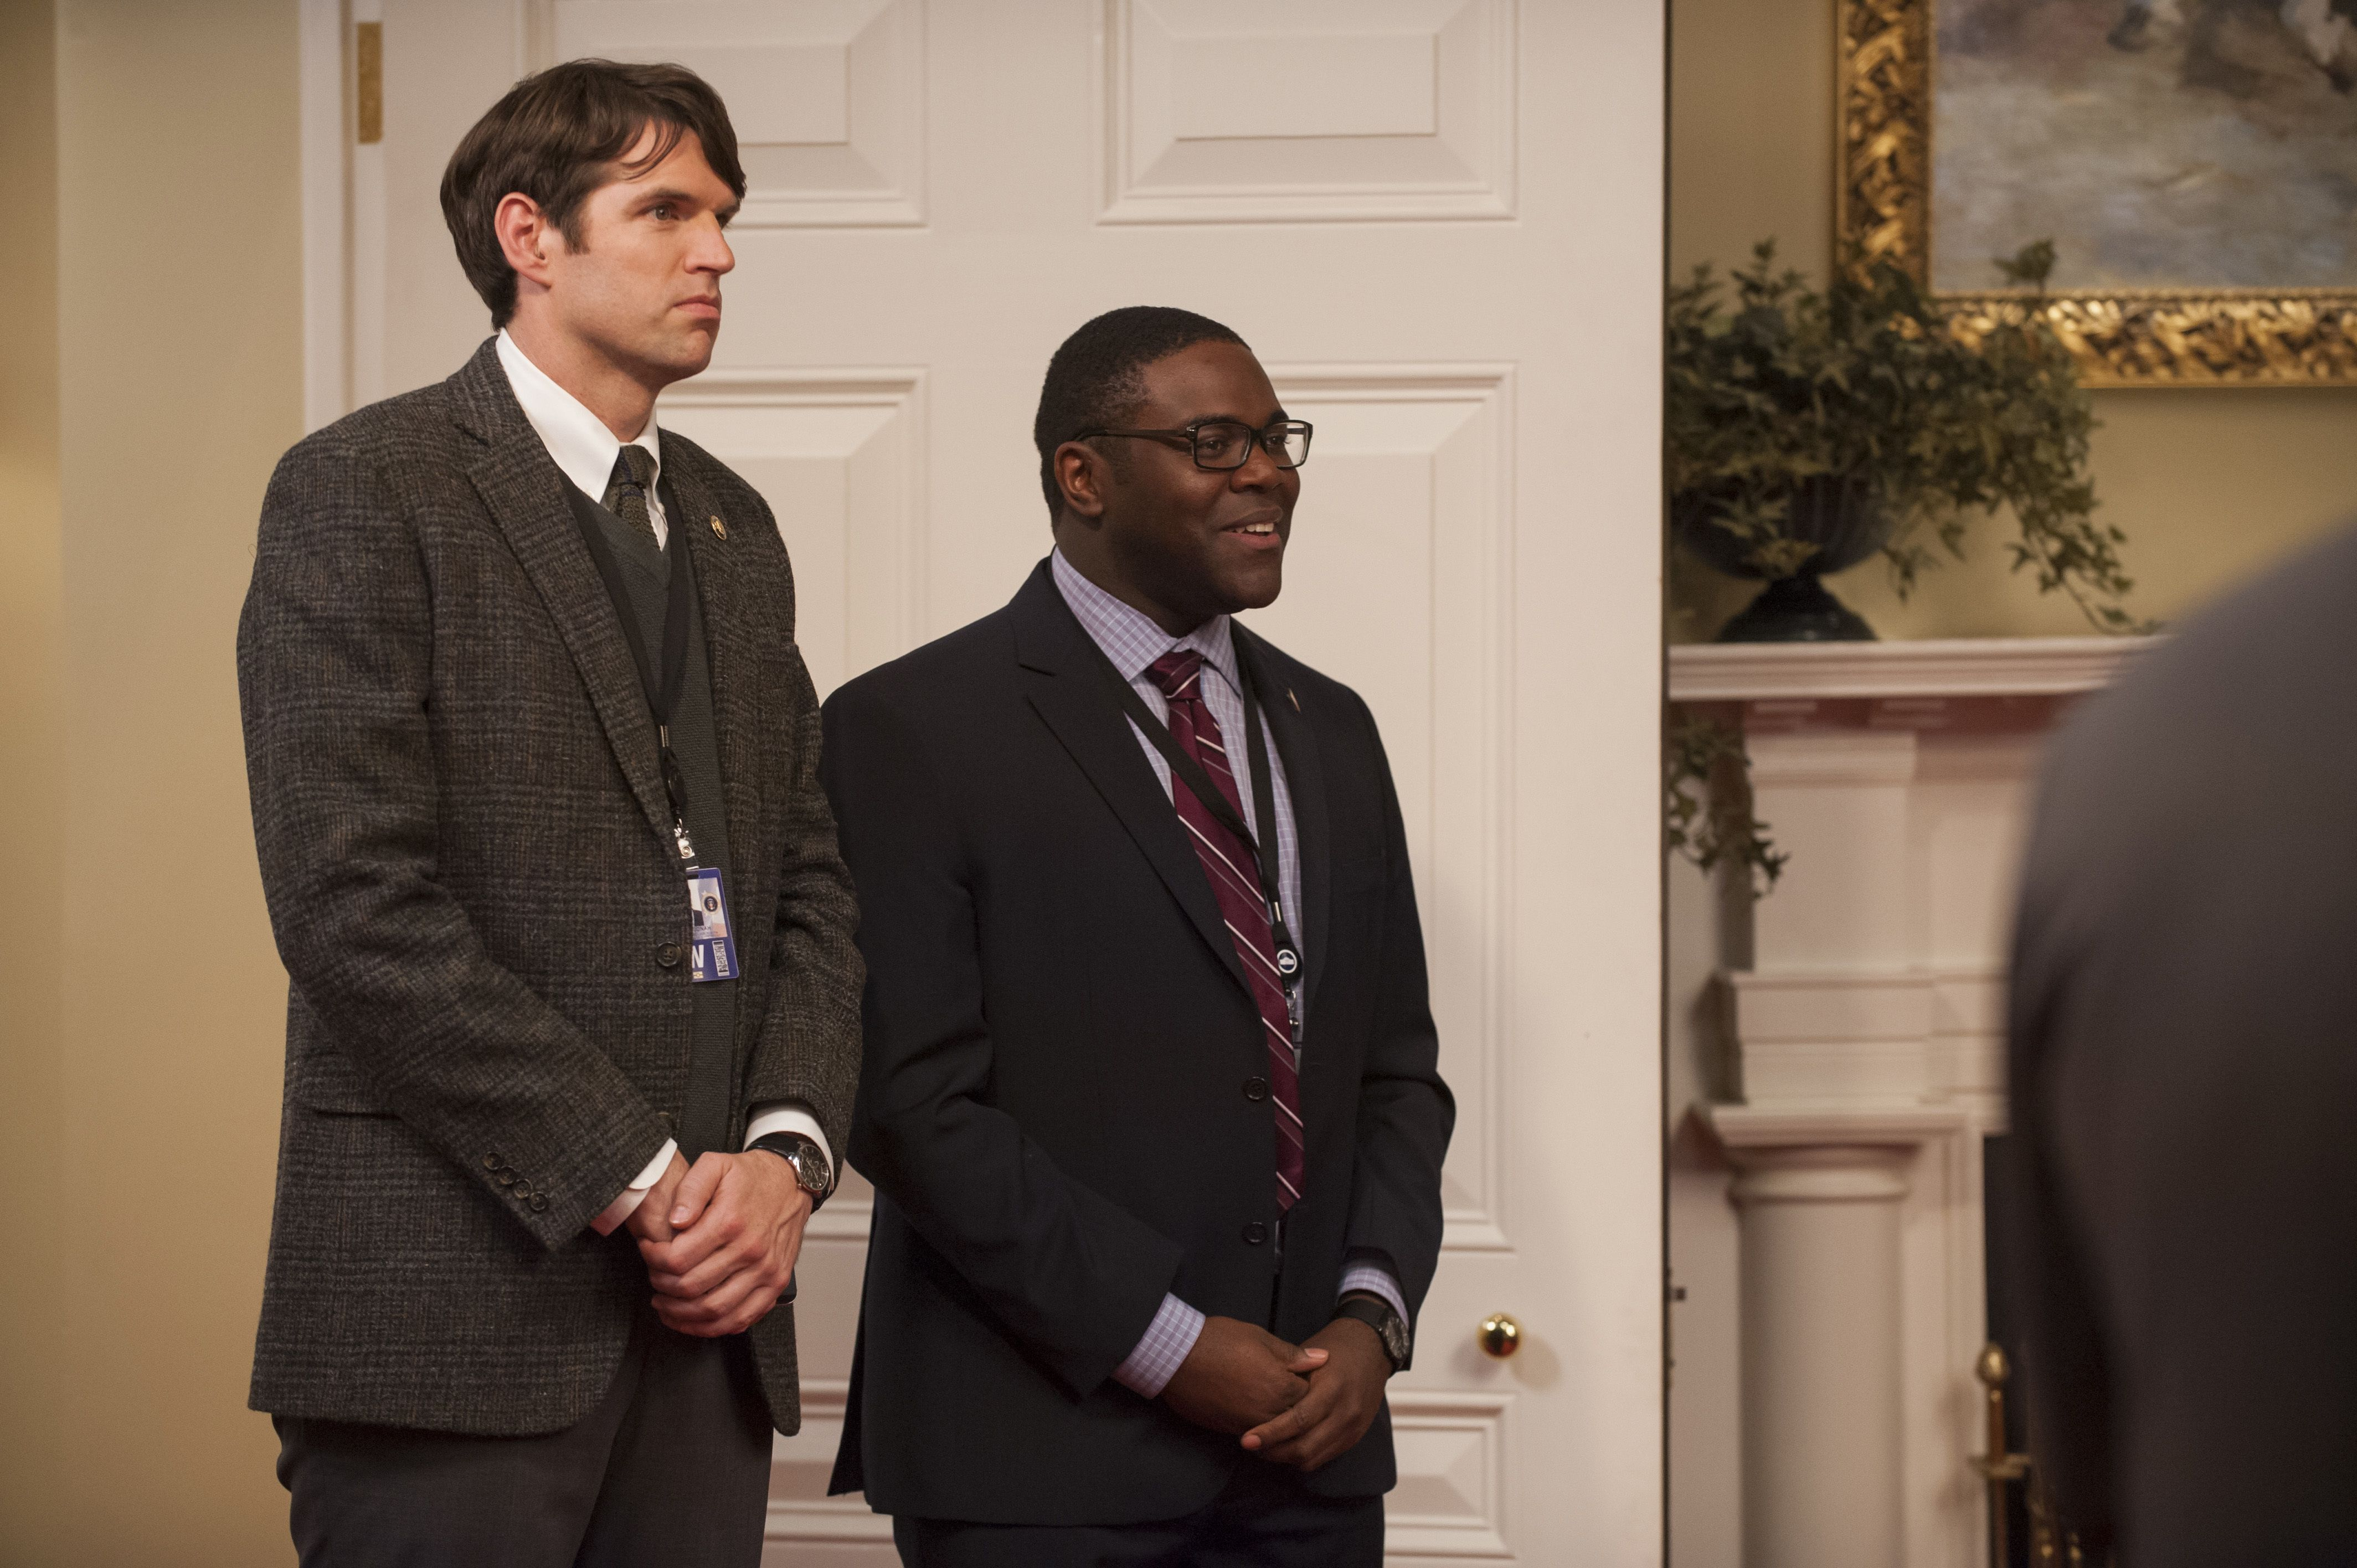 Veep Season 5 Review: HBO's Excellent Satire Is Too Real | Collider